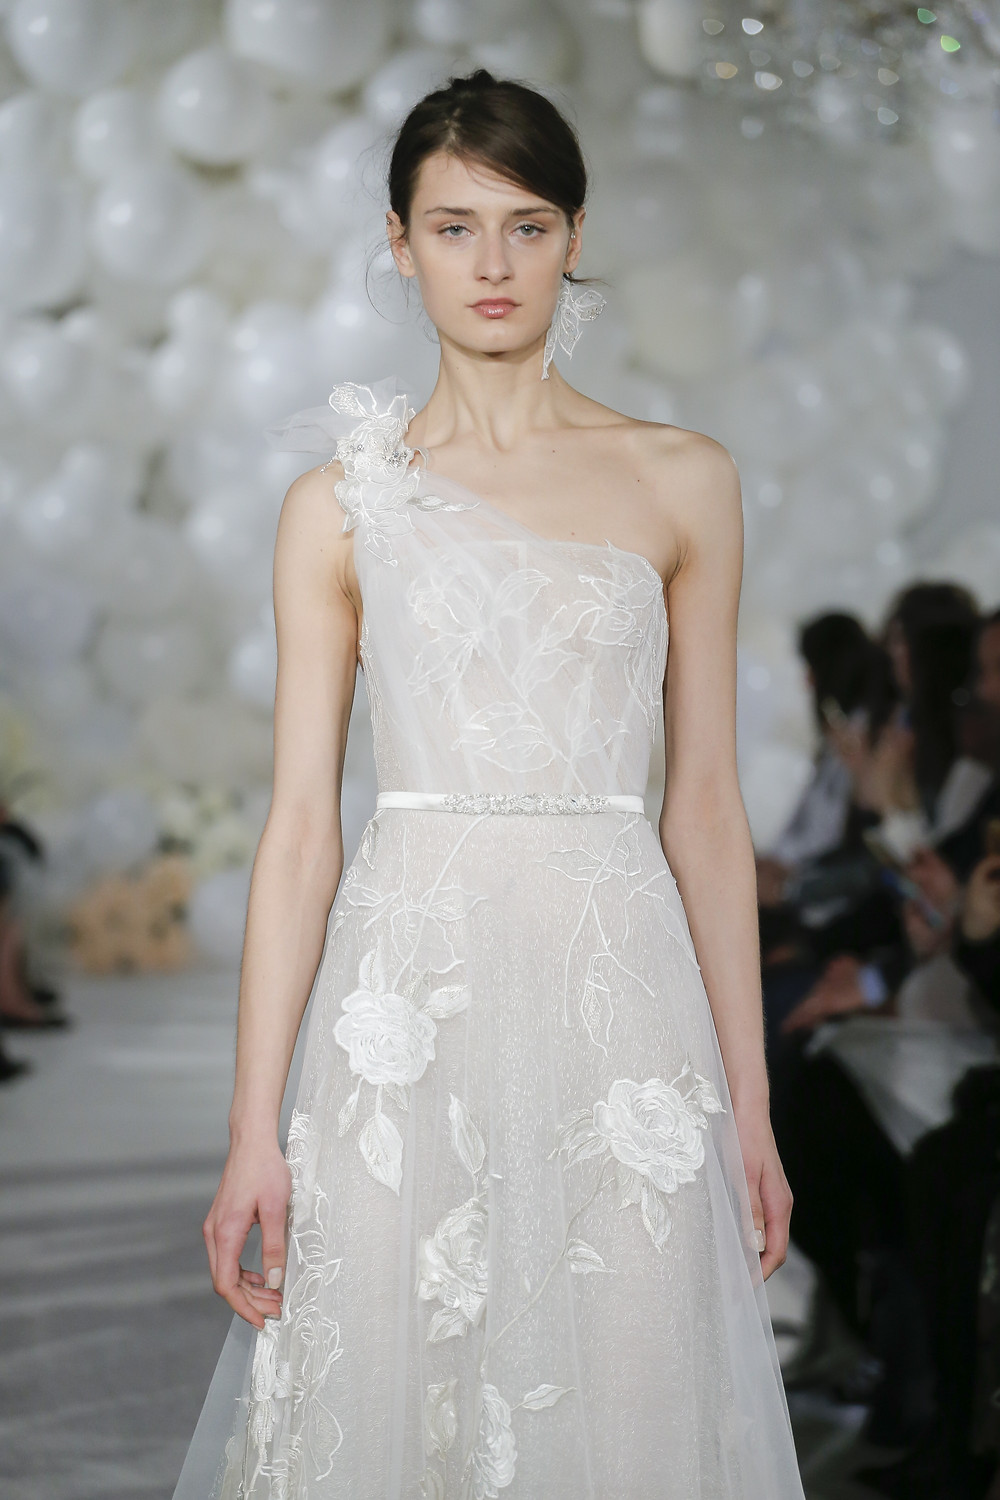 A soft, gauzy one shoulder wedding dress, with a tulle A-line skirt and floral embellishments